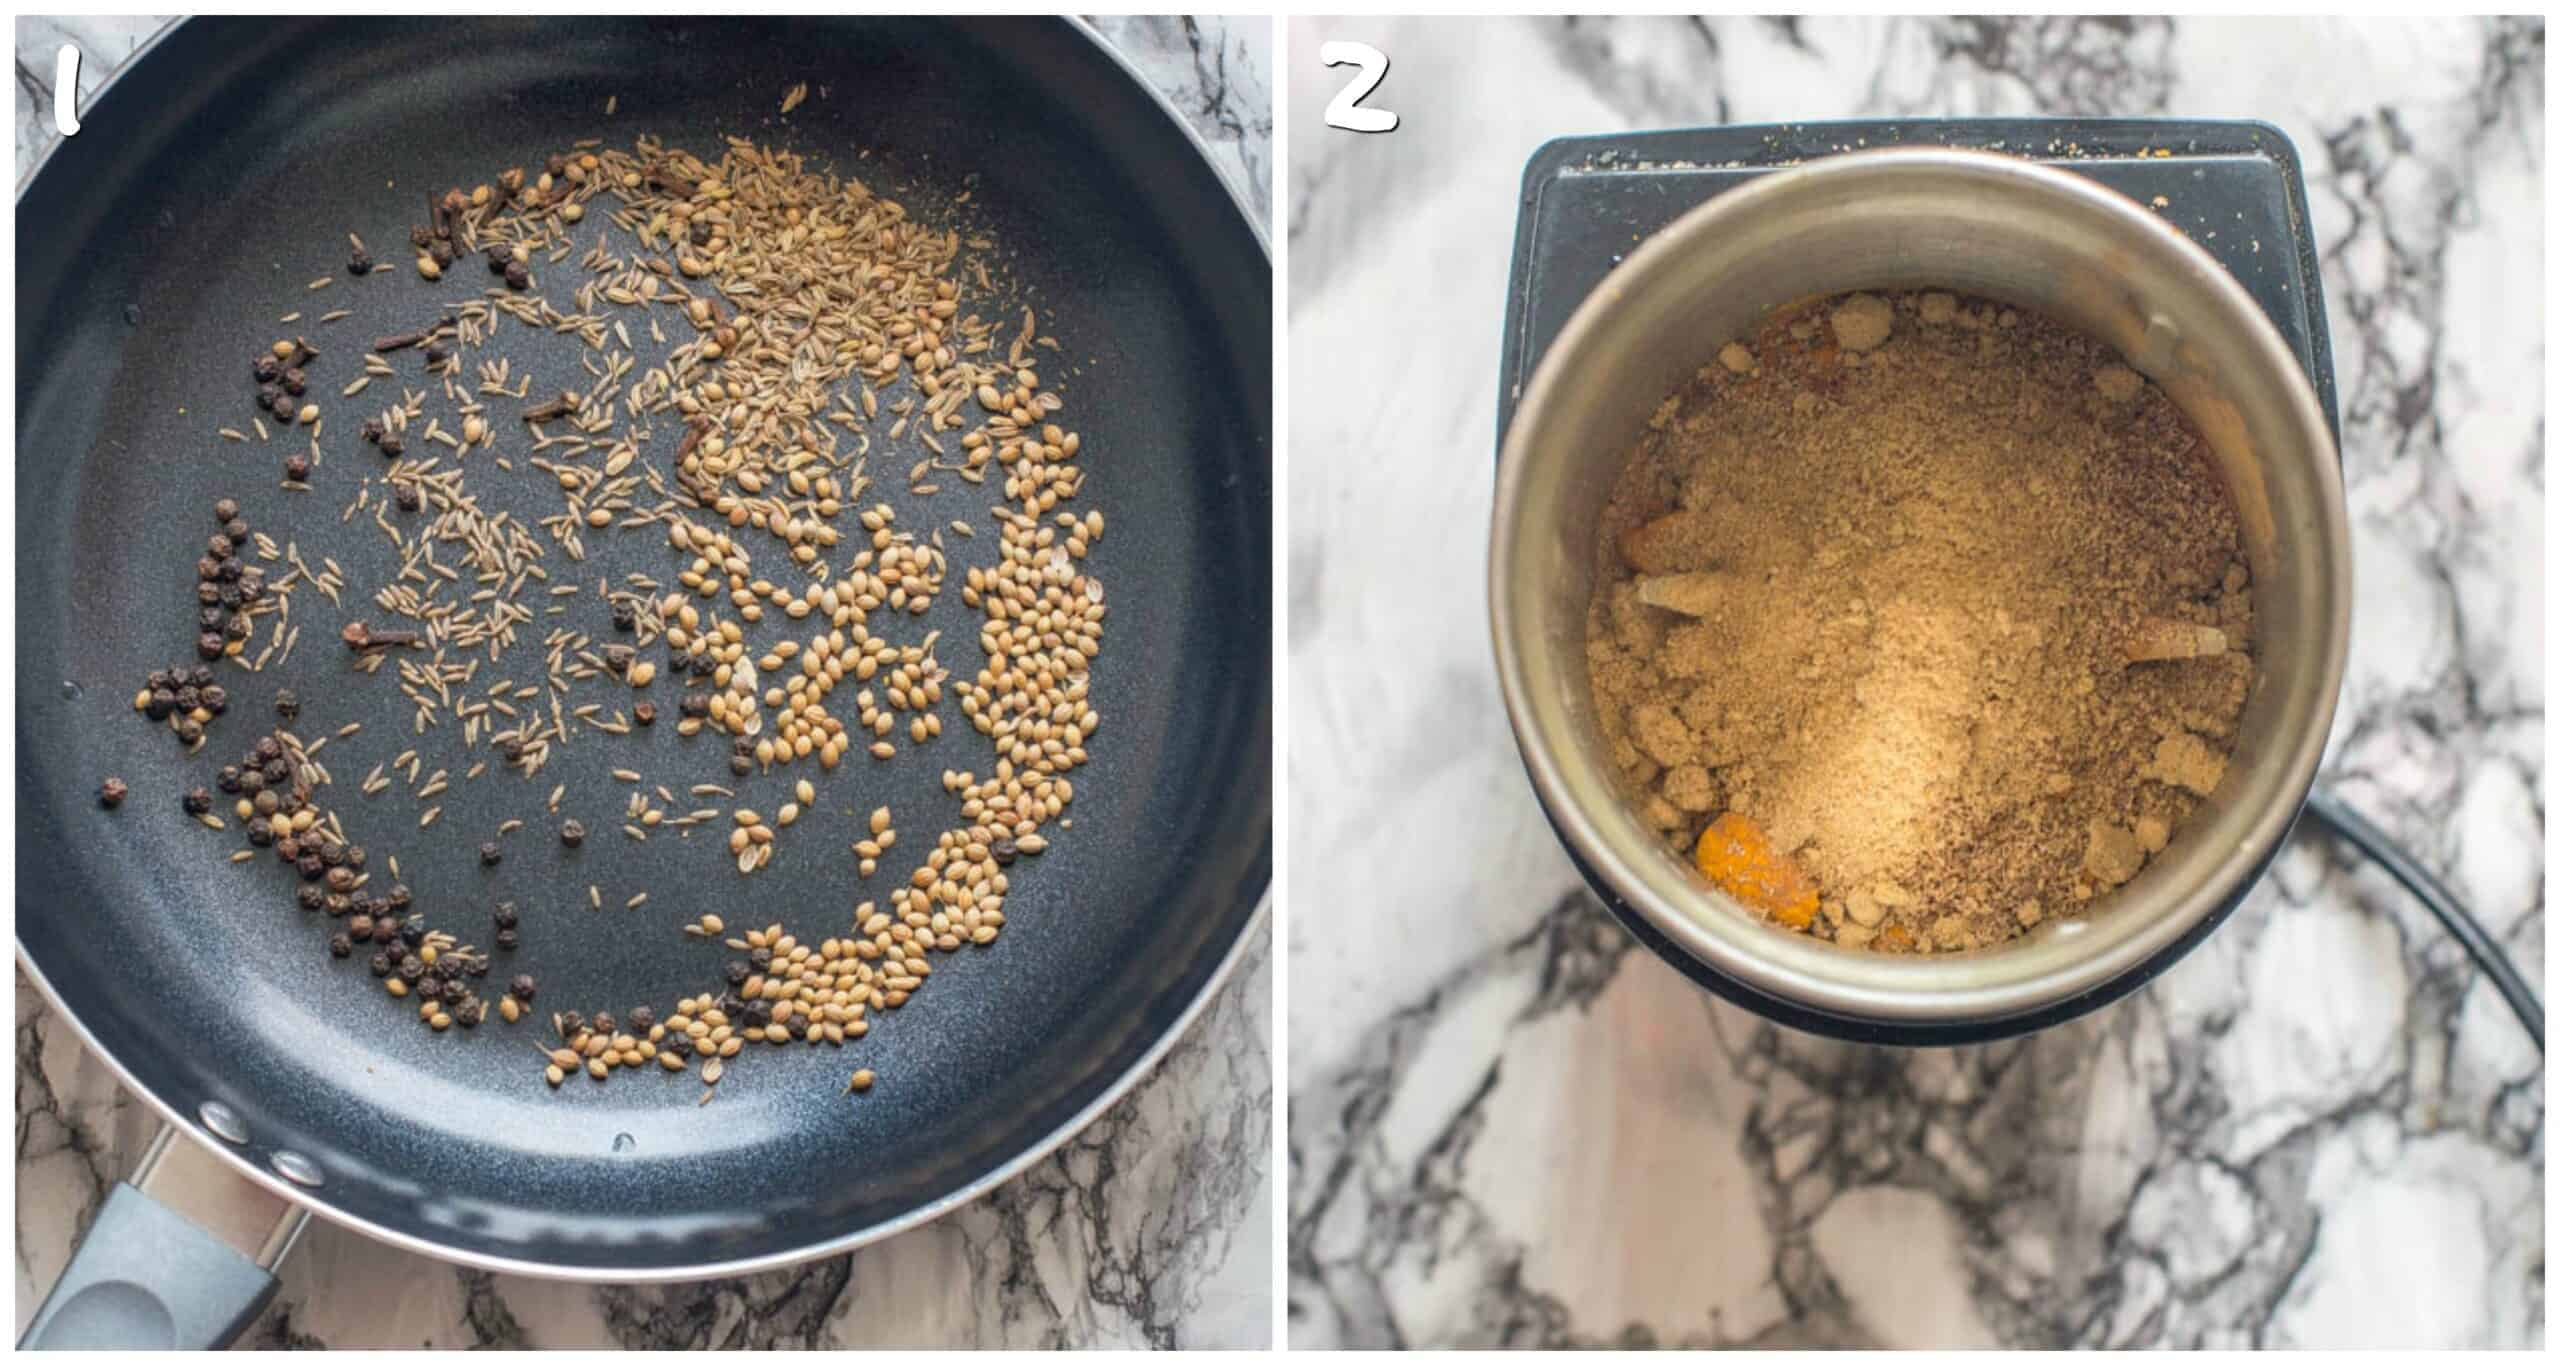 steps 1-2 toasting spices and adding ground spices to the grinder